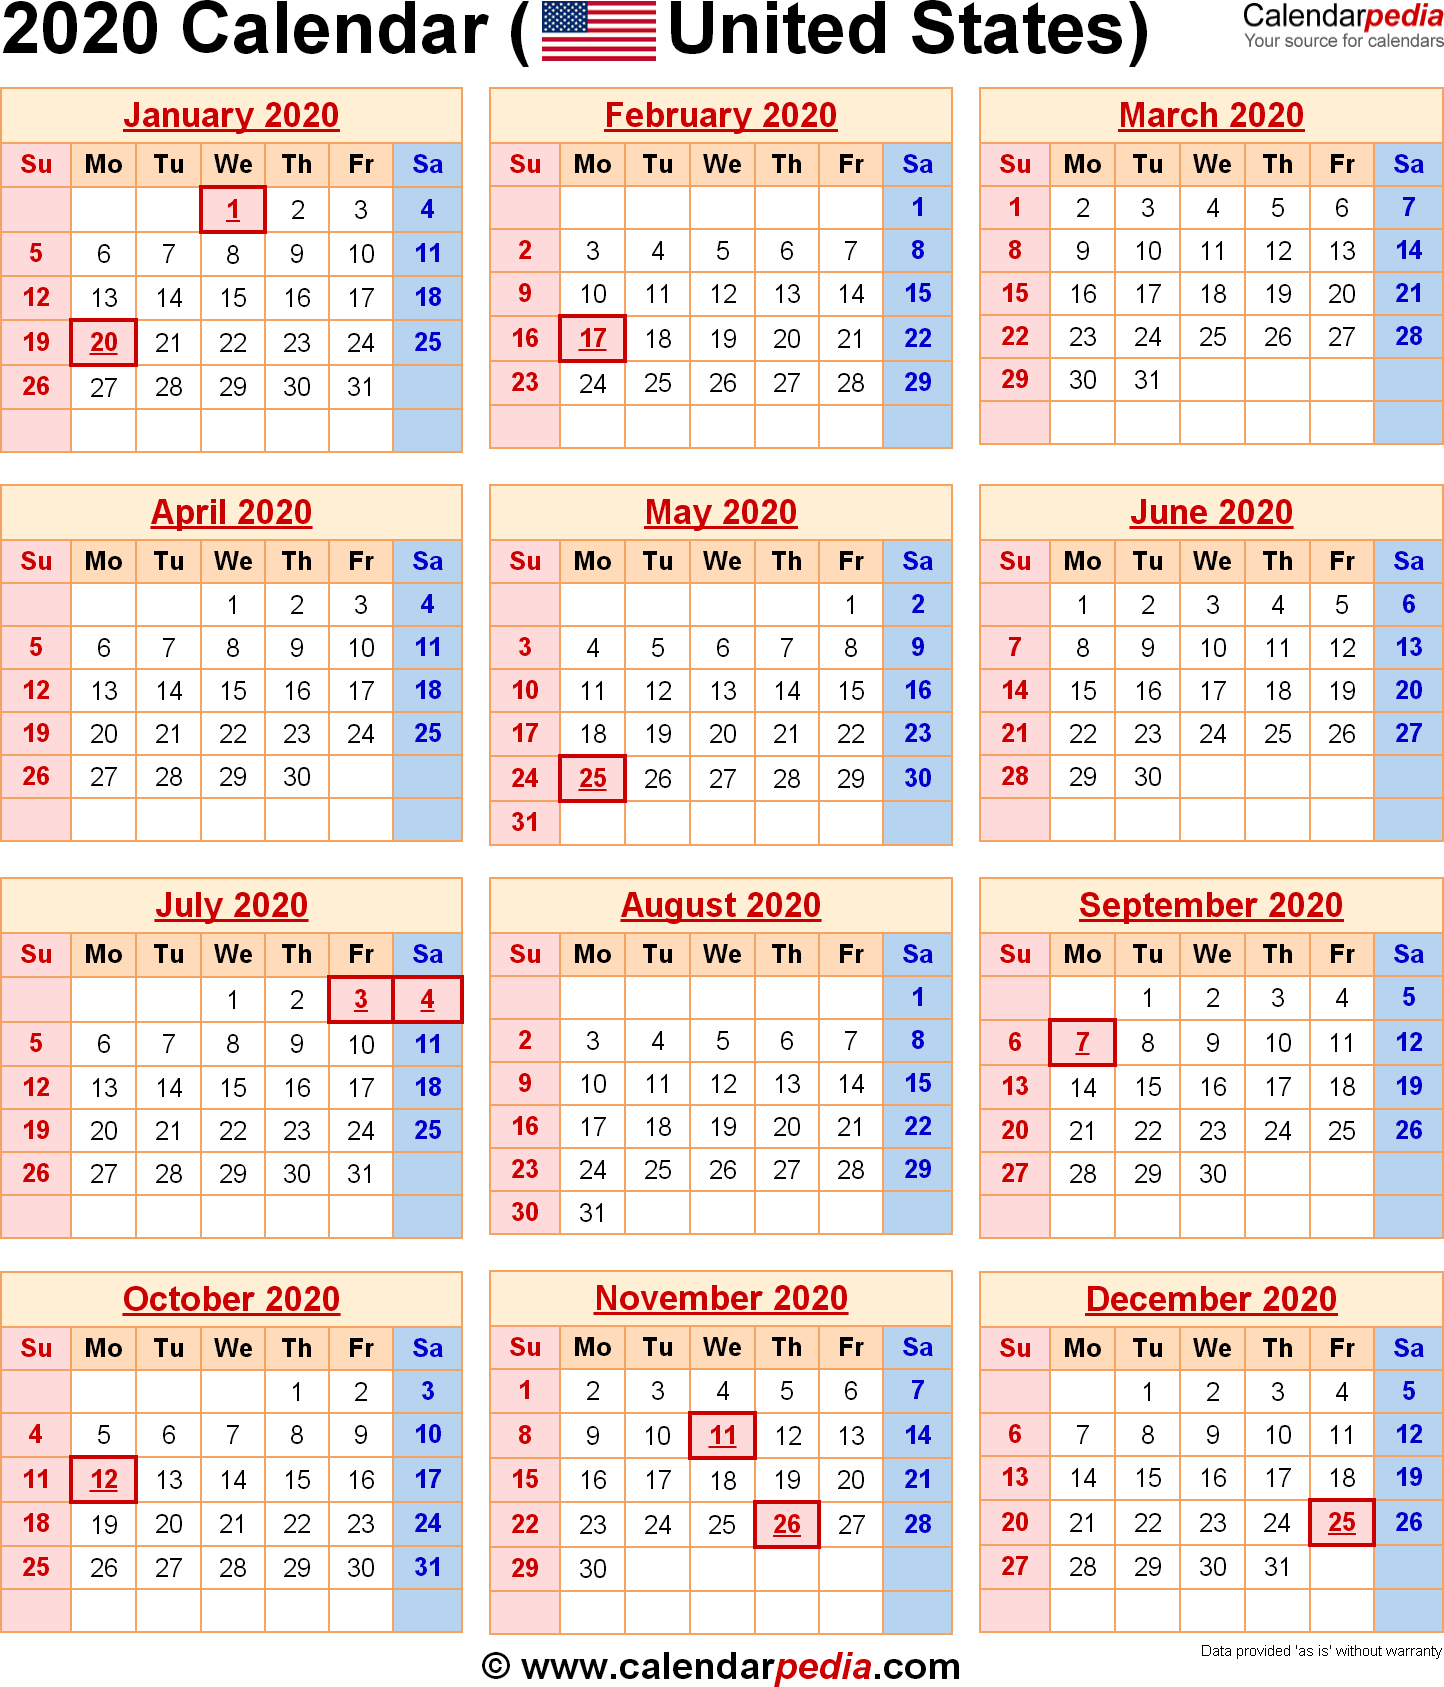 2020 Us Calendar With Holidays Printable - Wpa.wpart.co inside 2020 Calendars With Us Holidays